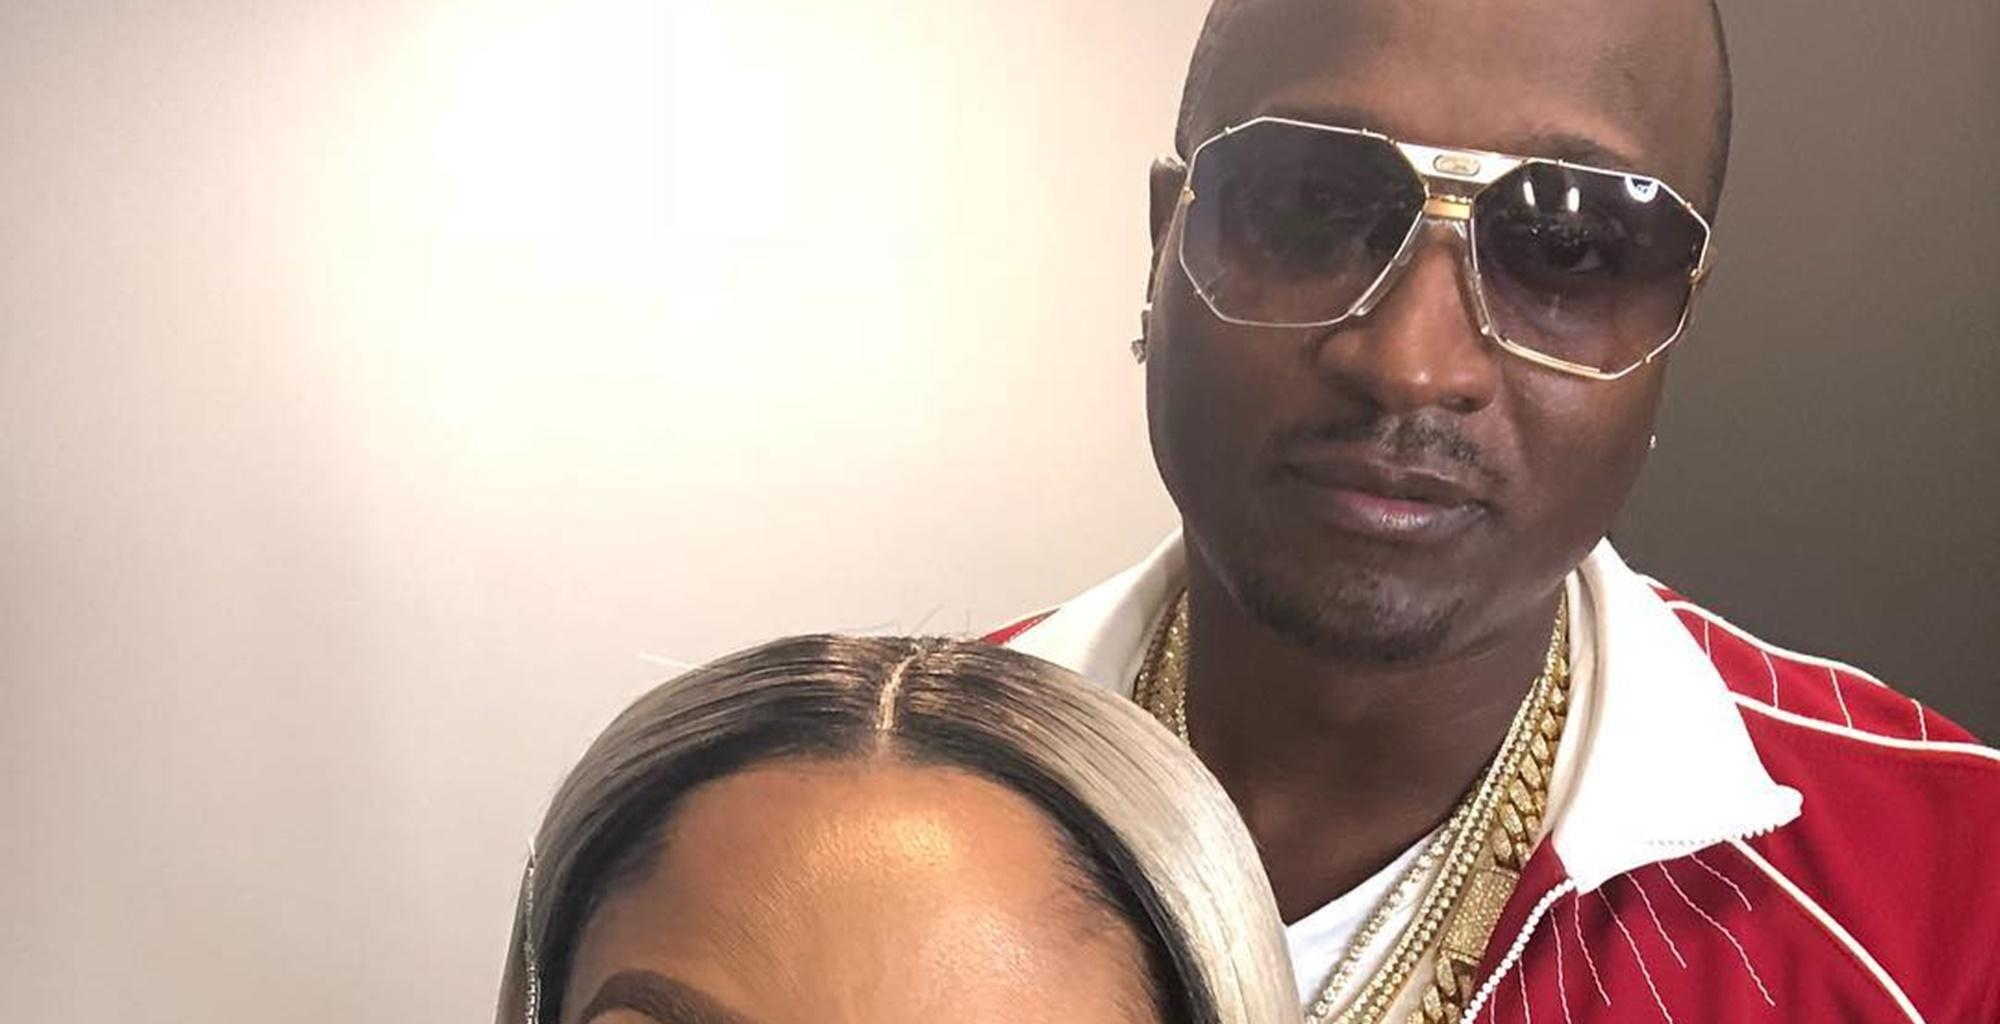 Rasheeda Frost's Latest Pics Have Fans Telling Her To Stop Wearing Blonde Wigs After Kirk Frost Also Gets Slammed For His Look